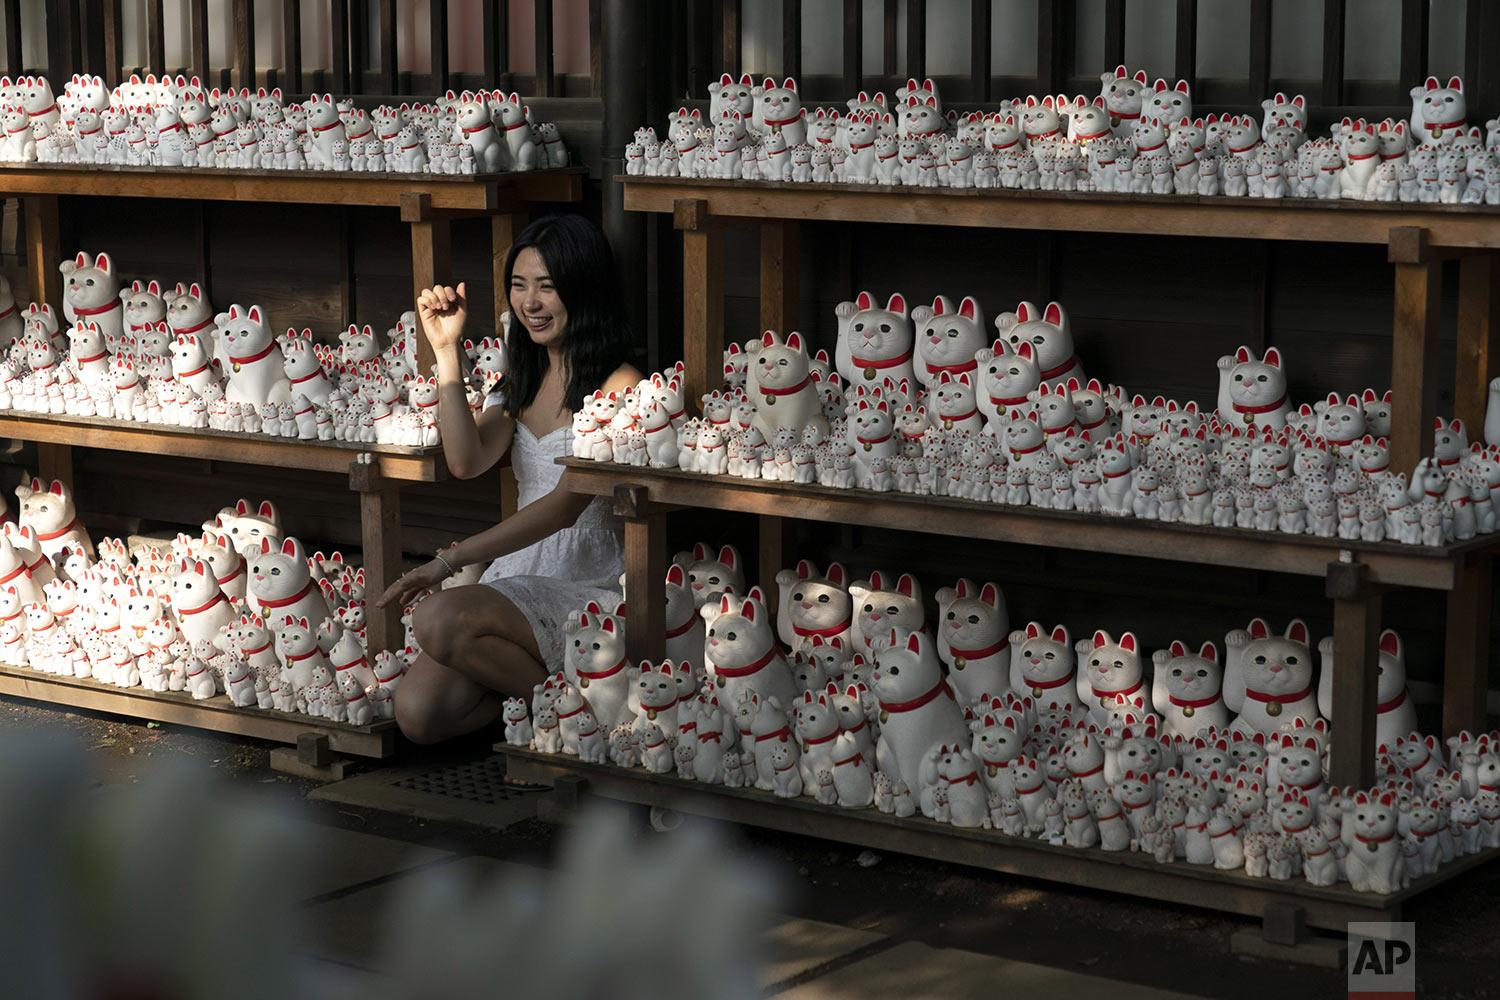 A woman poses for photos with beckoning cat figurines at Gotokuji Temple in Tokyo, Tuesday, June 25, 2019. (AP Photo/Jae C. Hong)